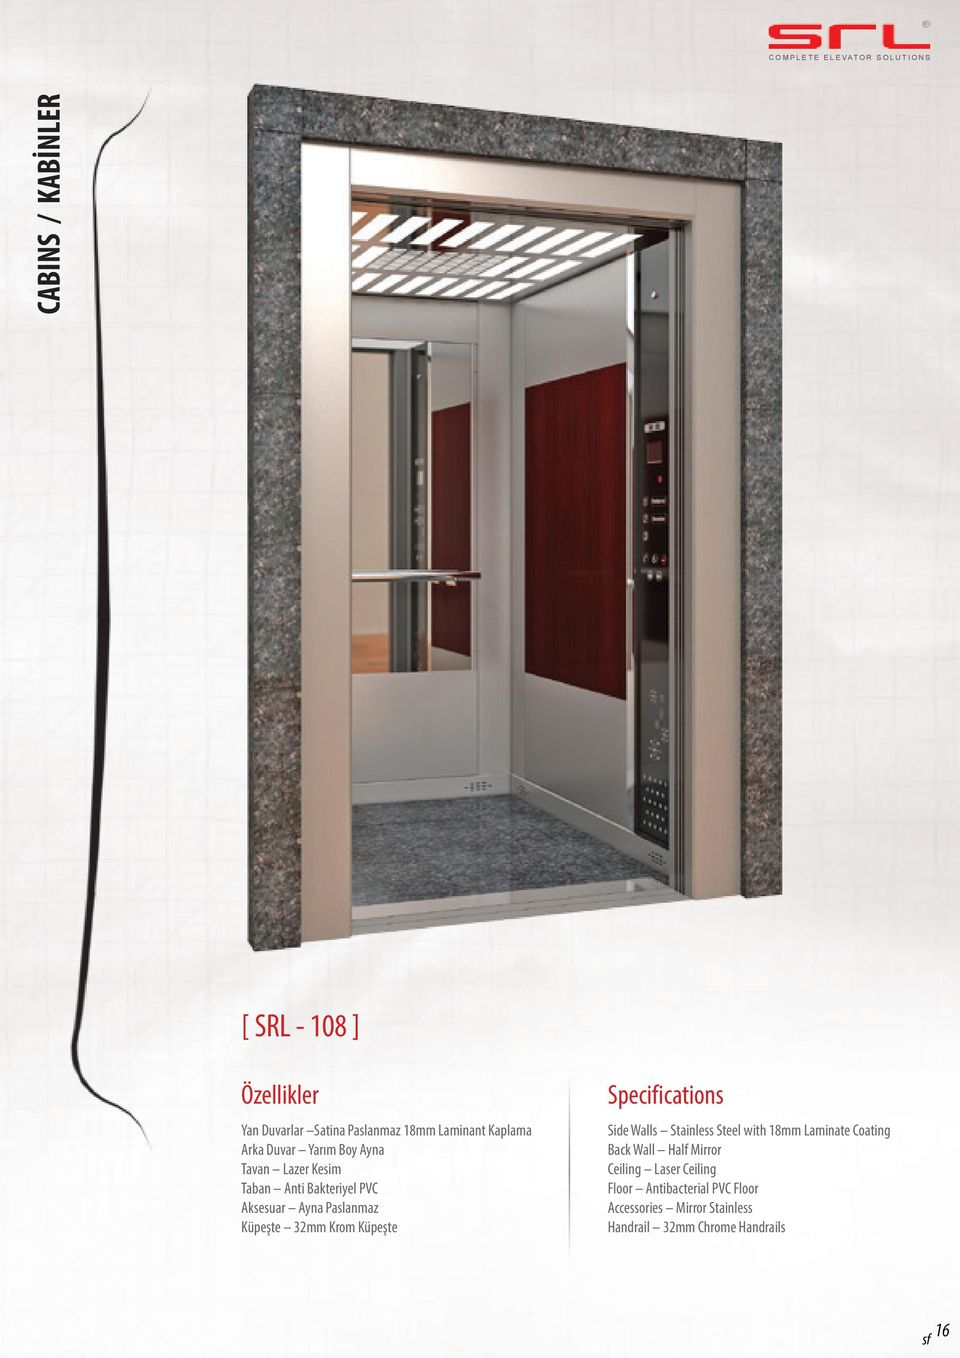 Küpeşte Specifications Side Walls Stainless Steel with 18mm Laminate Coating Back Wall Half Mirror